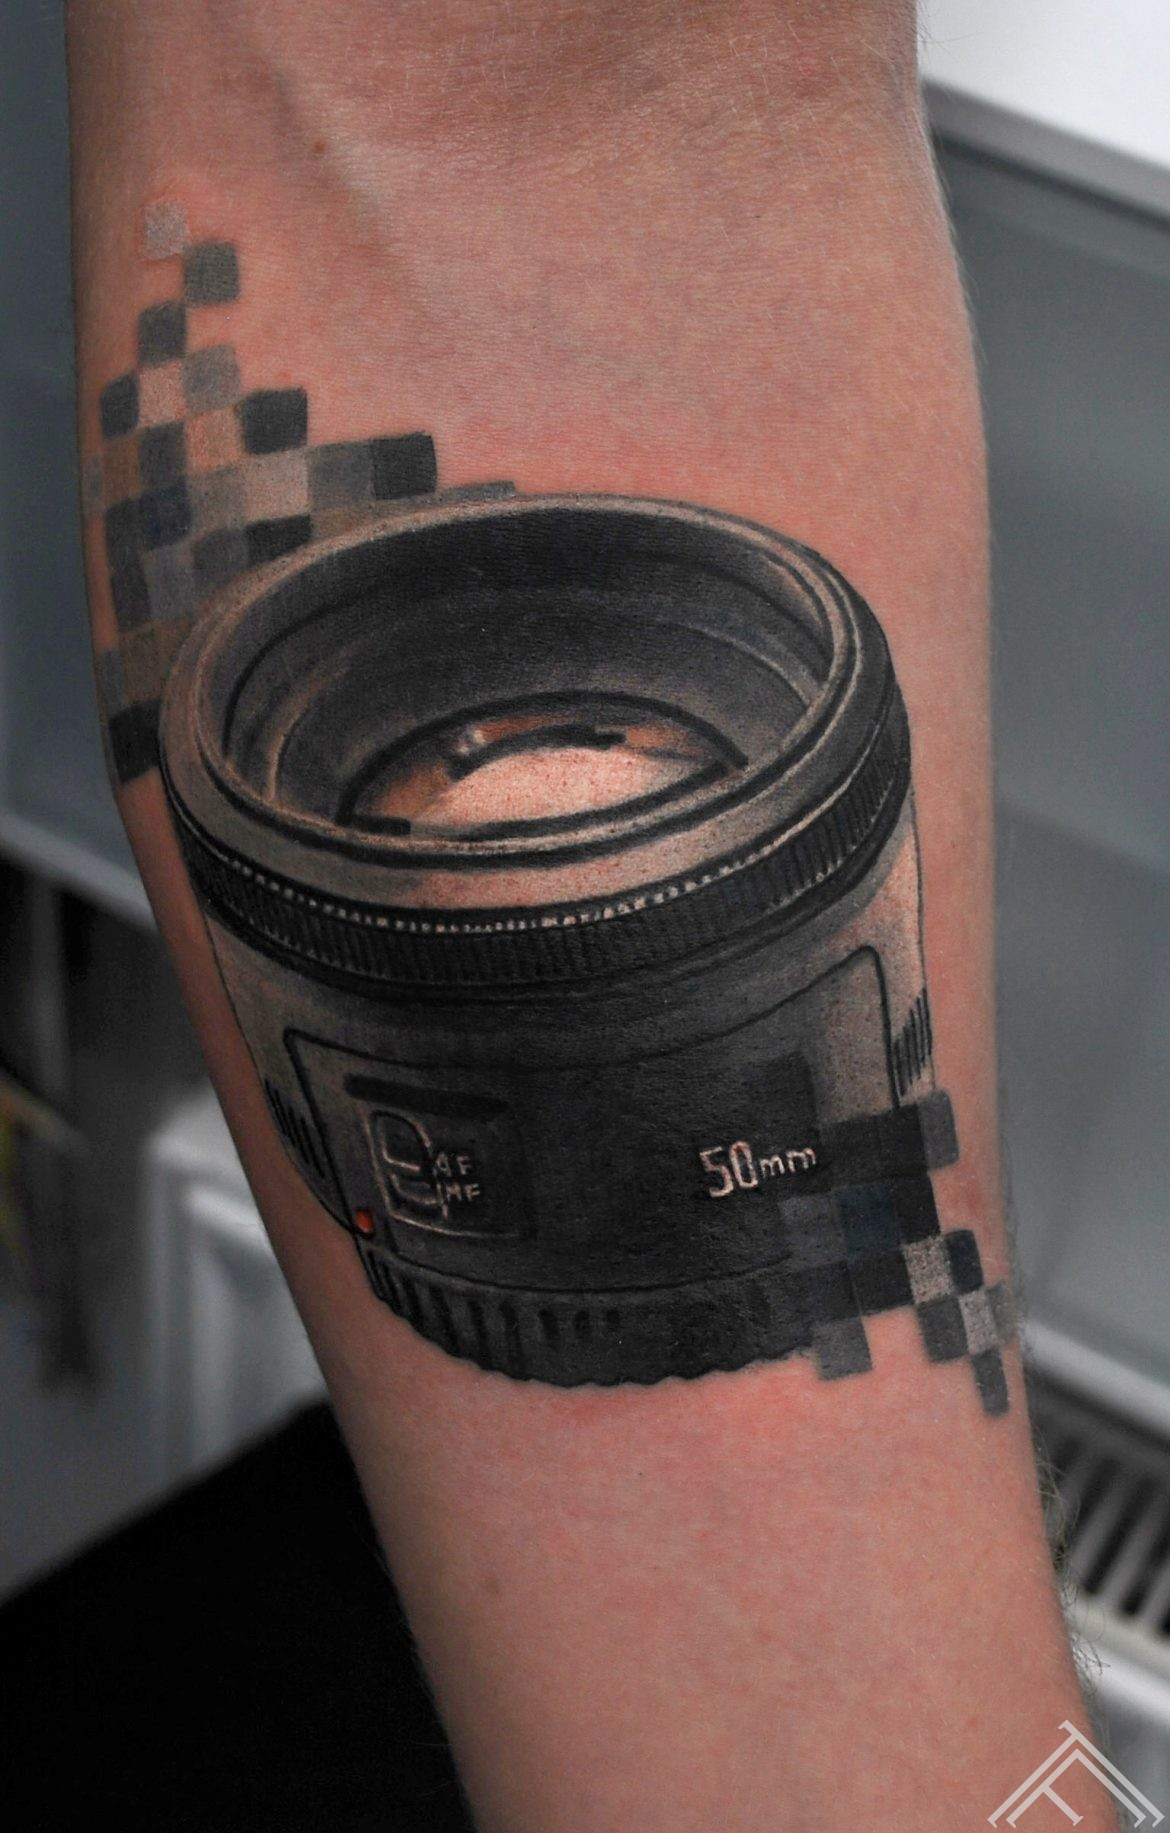 tattoo-lens-canon-tattoo-marispavlo-tattoofrequency-frequency-riga-tattoostudio